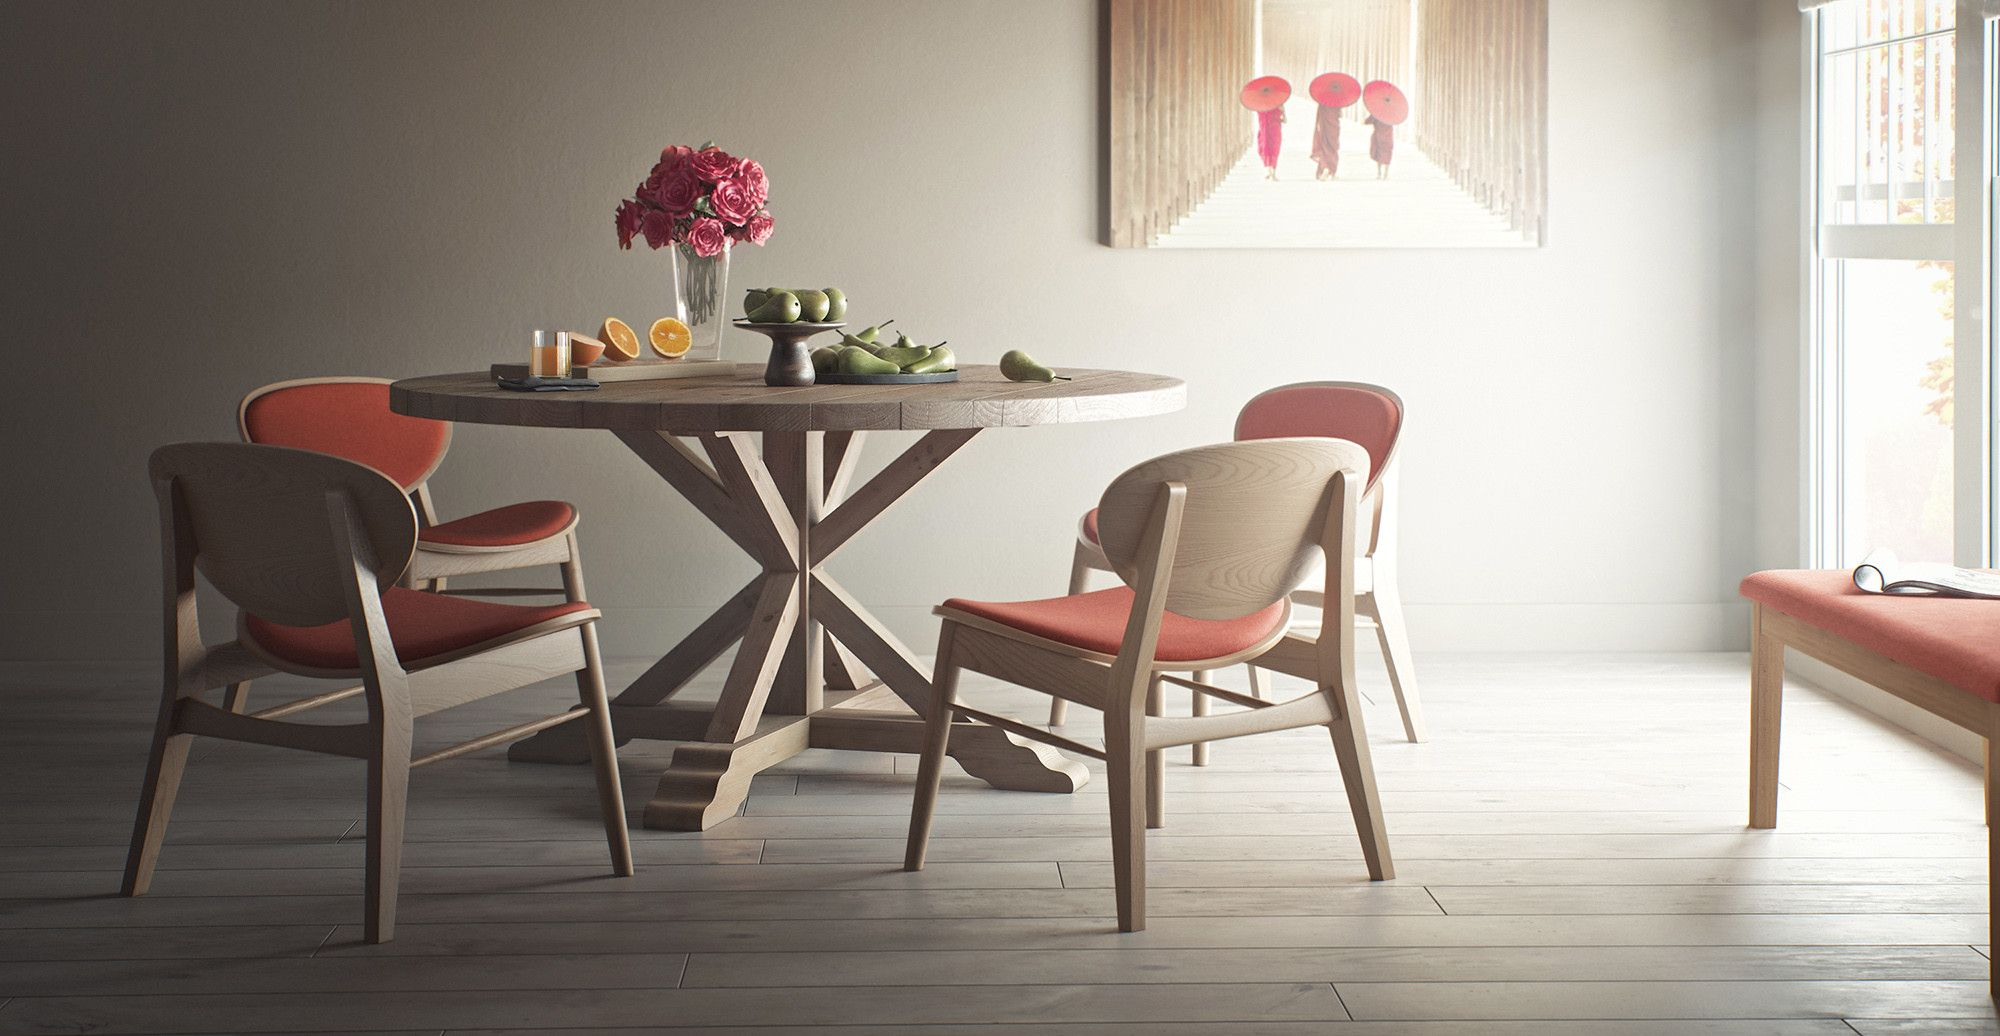 Reims Dining Chair Home Of Dreams Chairs